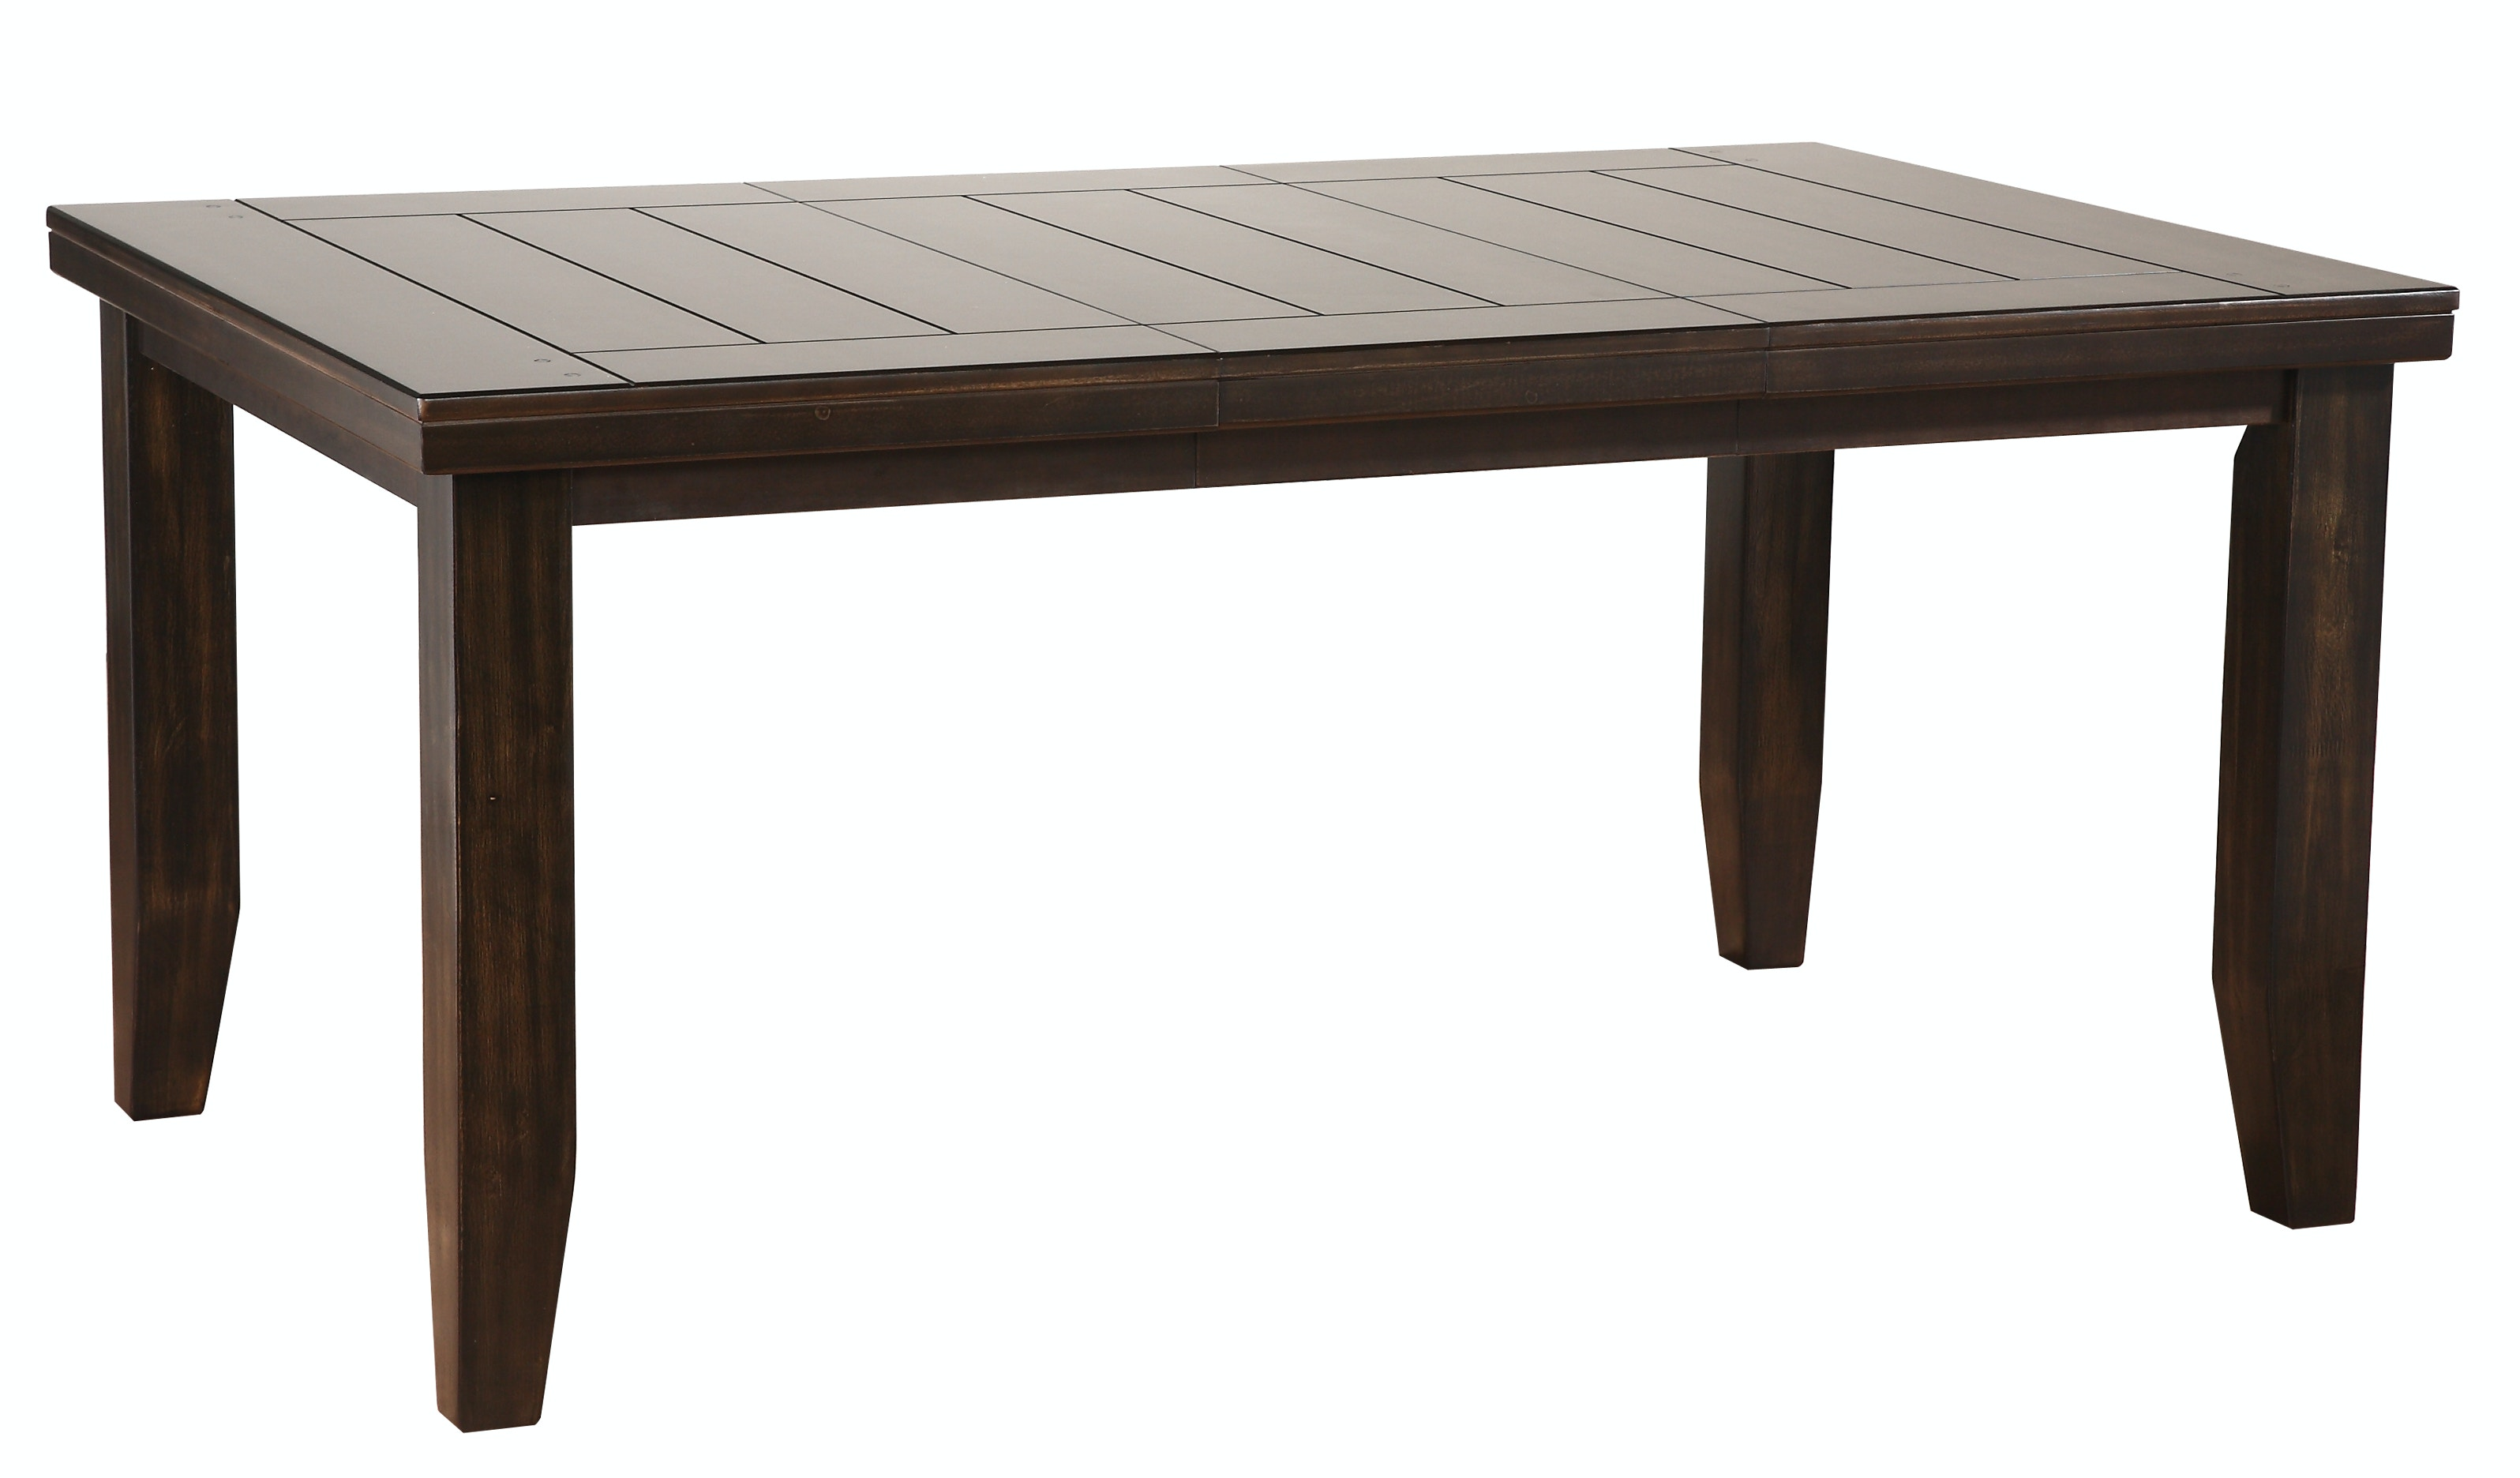 Acme Furniture Urbana Dining Table 74620